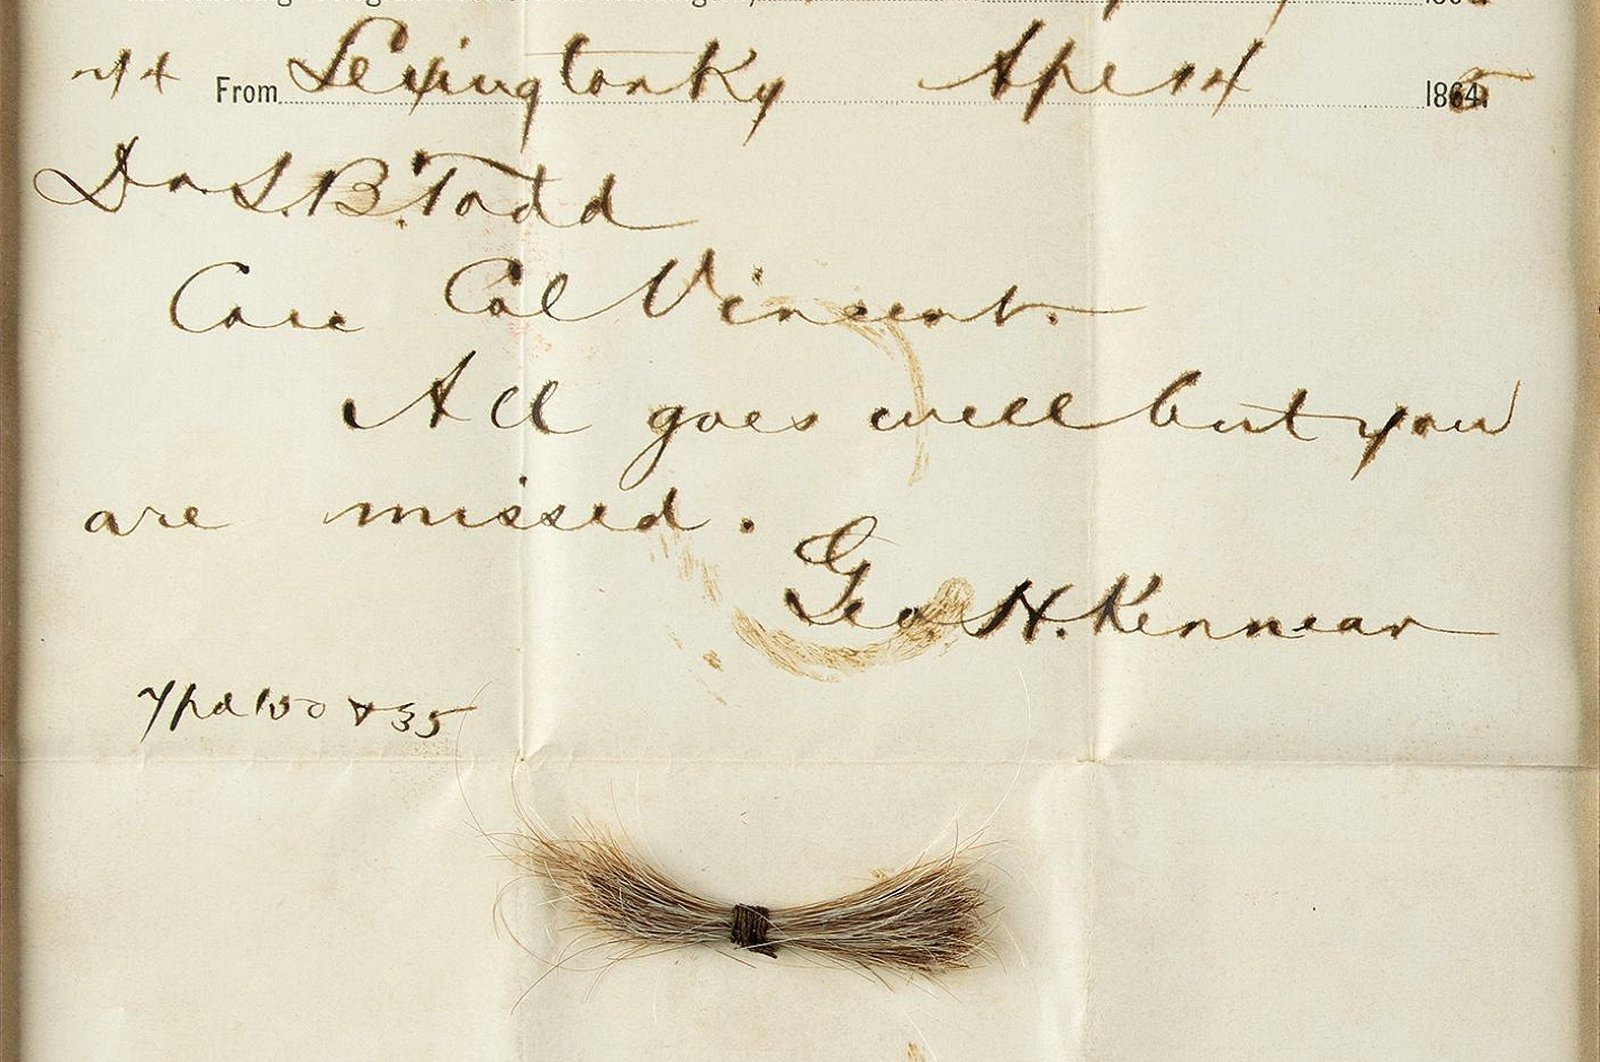 A bloodstained telegram and lock of hair from former U.S. President Abraham Lincoln, to be auctioned Sept. 12, Washington, D.C., July 2020. (Nikki Brickett/RR Auction via AP)